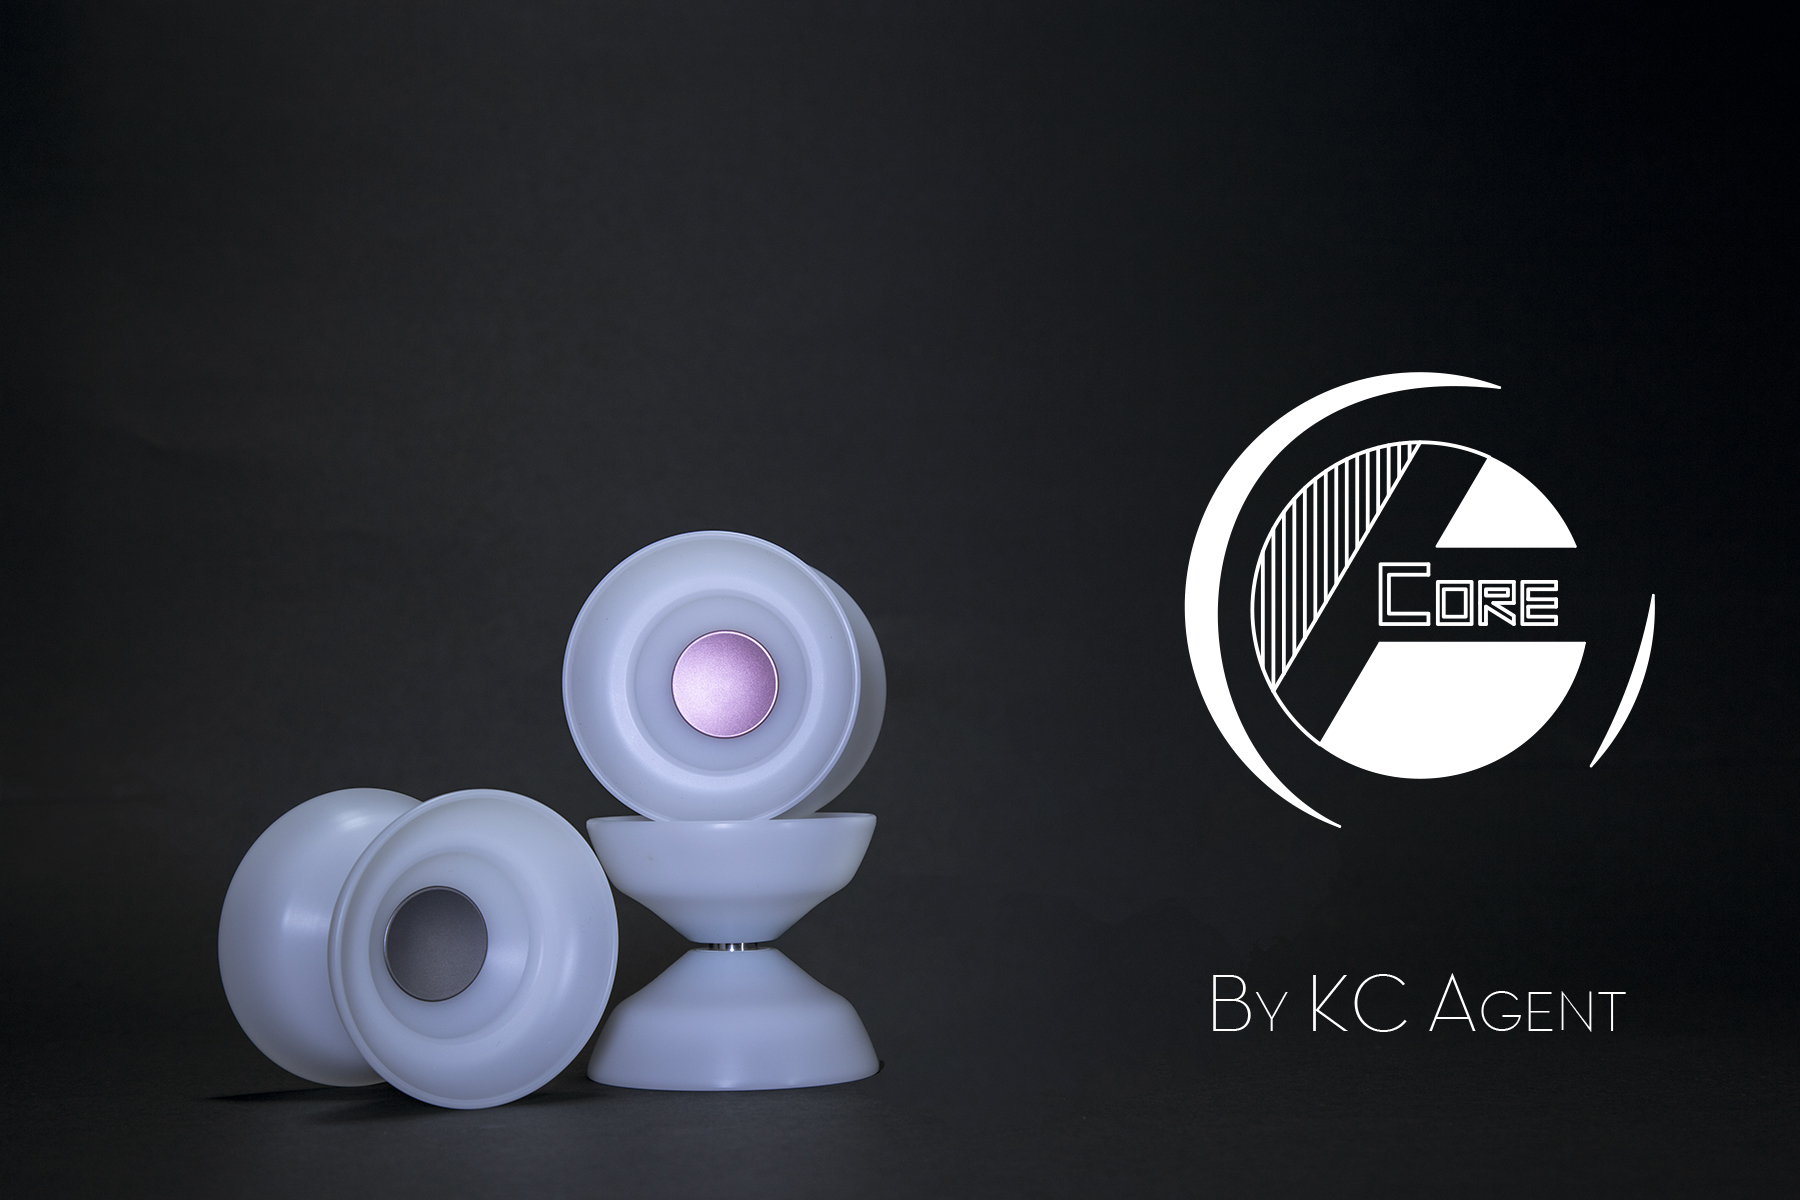 KC Agent Core offstring 4a yoyo